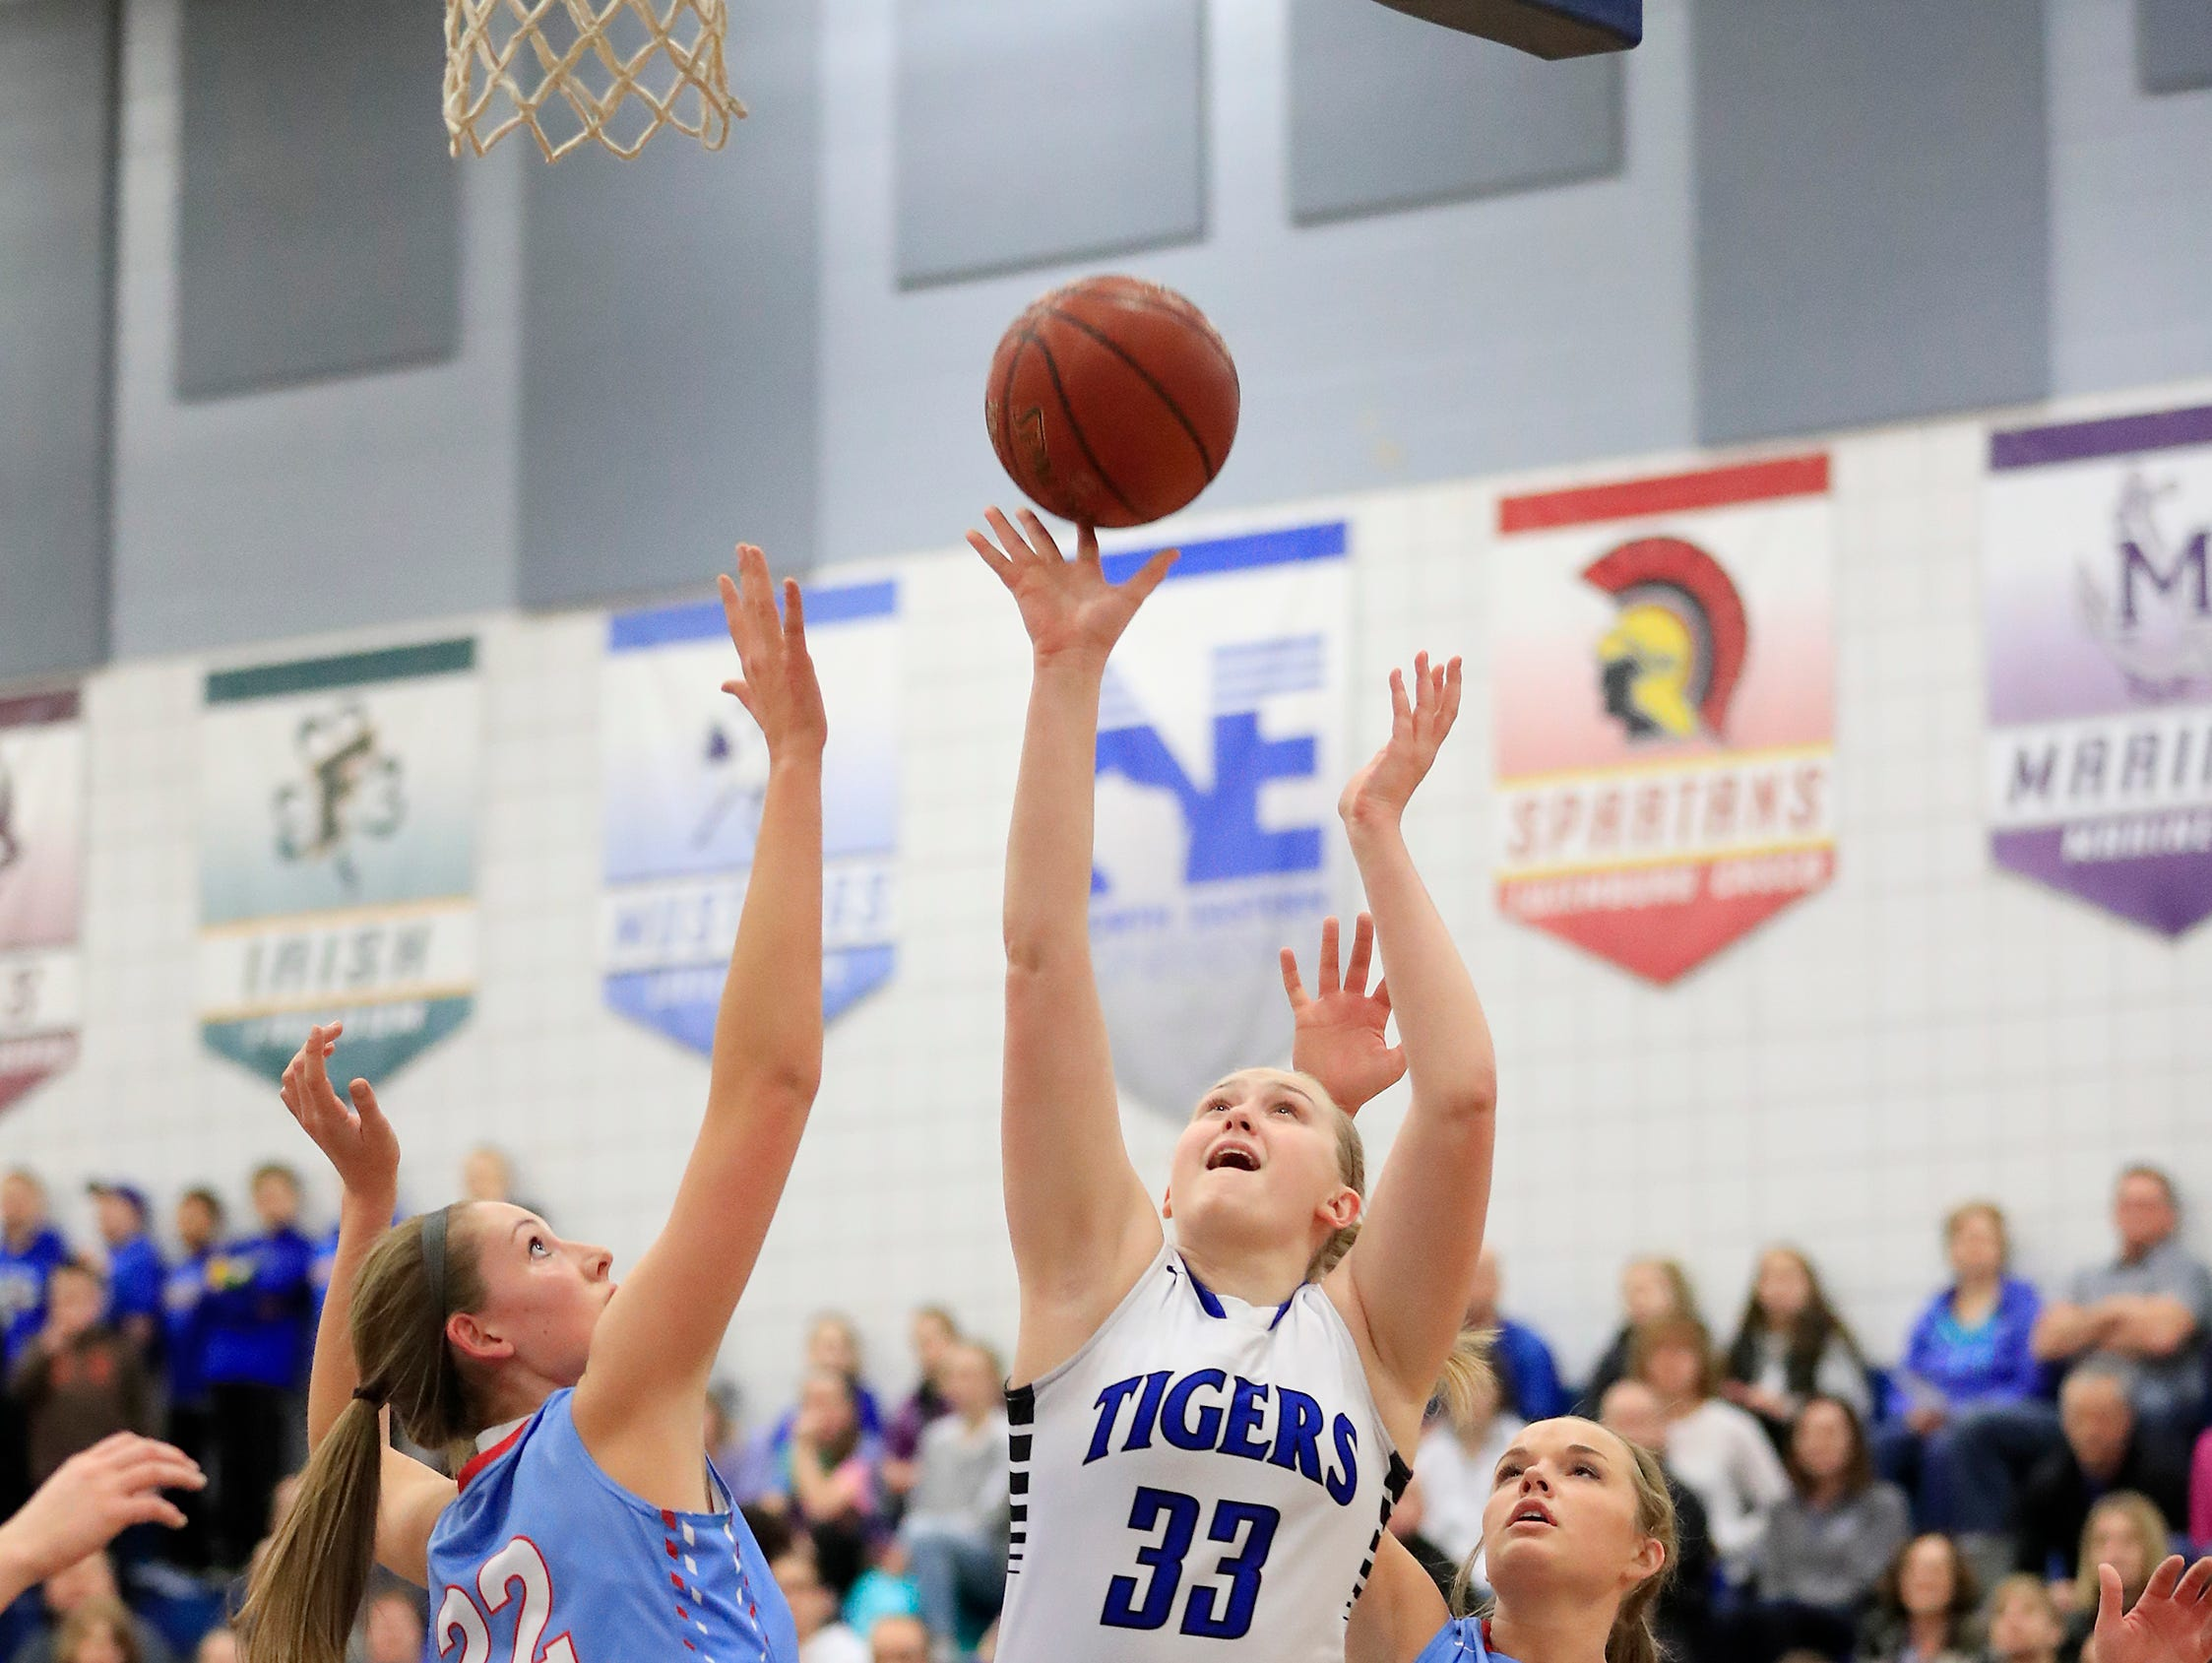 Wrightstown senior Lexy Wolske (33) shoots over Southern Door's Meghan LaCrosse (22) in a WIAA Division 3 regional final girls basketball game on Feb. 27. Wolske is averaging 7.7 points and 4.5 rebounds per game this season.